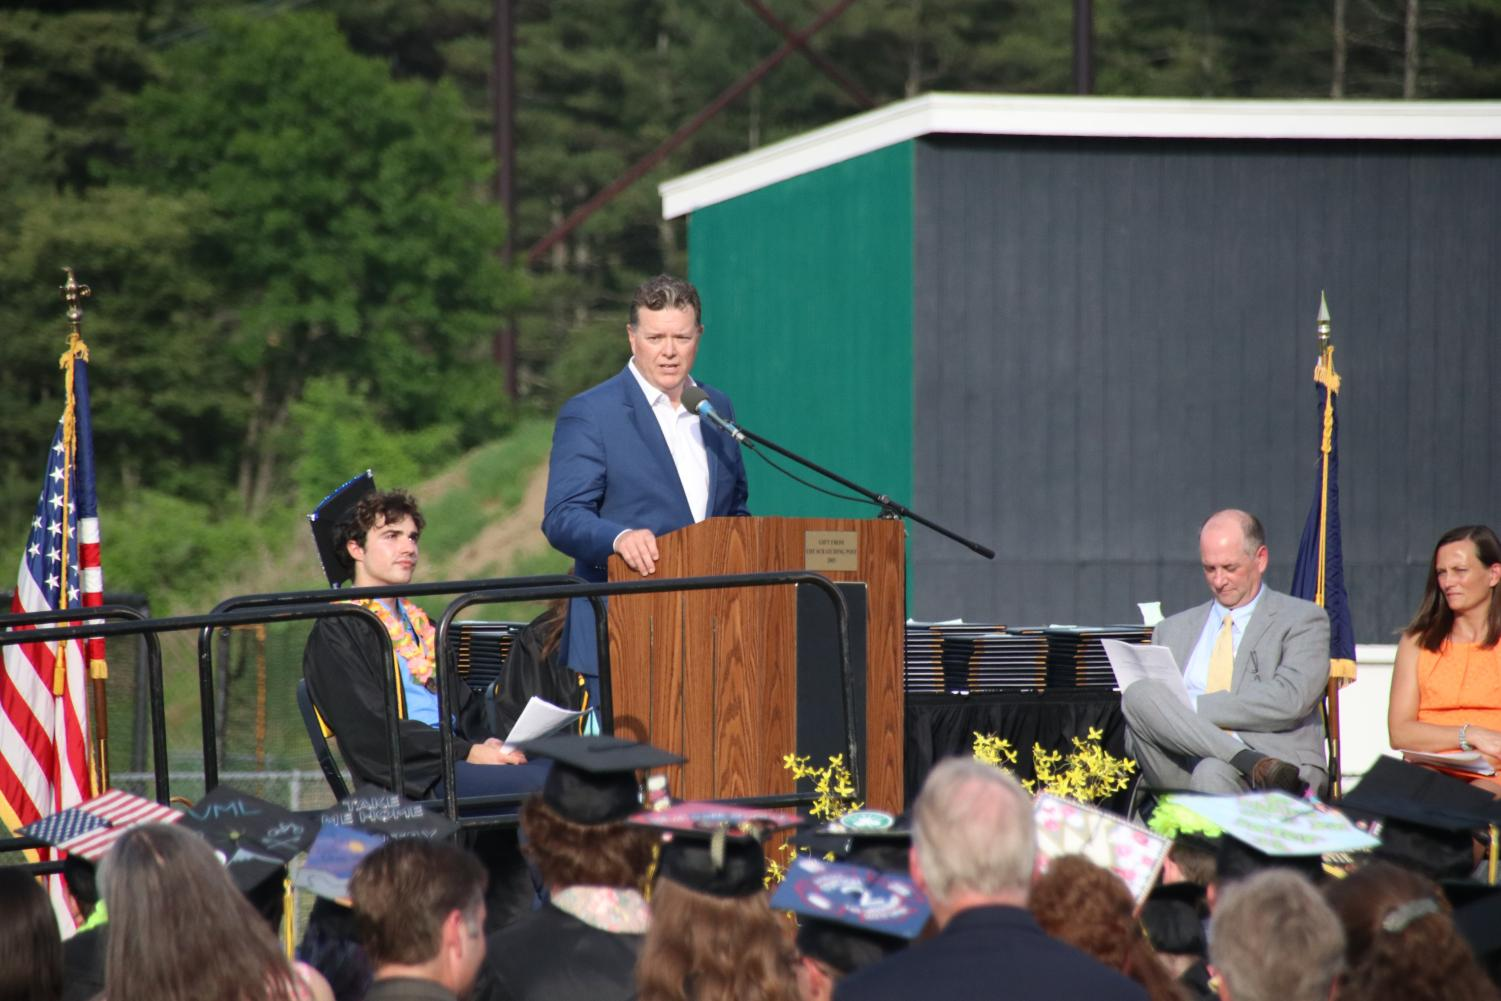 The+Chair+of+the+Souhegan+School+Board%2C+Jim+Manning%2C+spoke+at+the+ceremony.